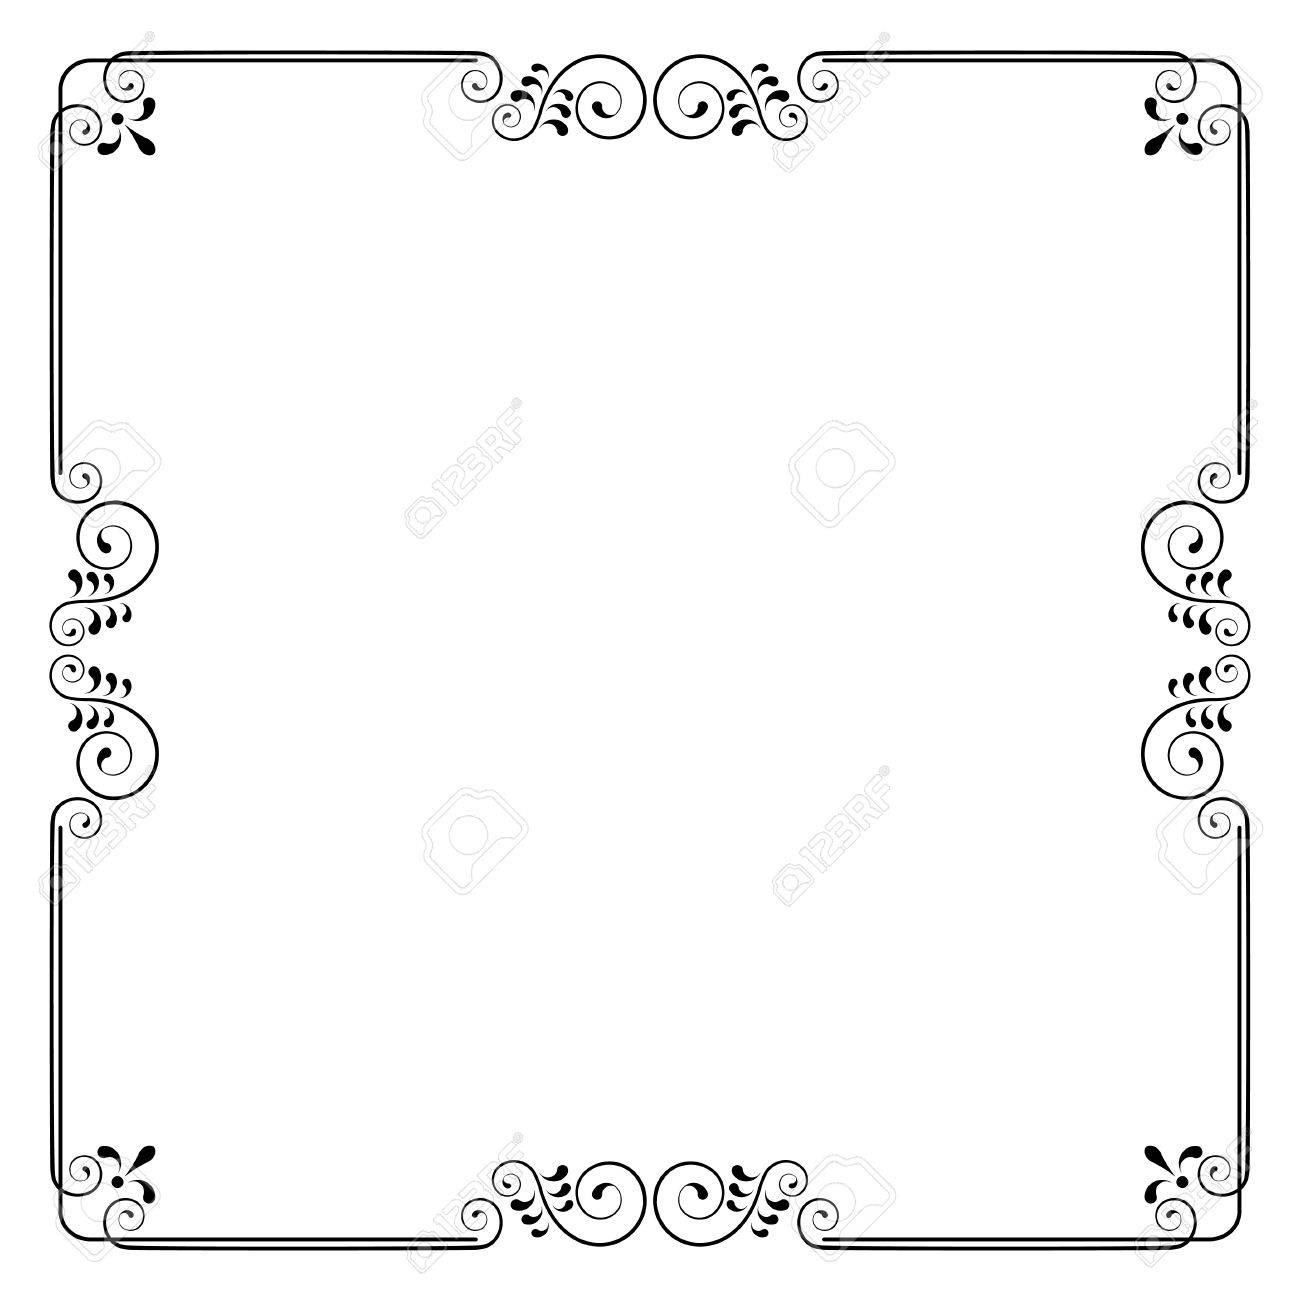 decorative square frame with swirls and leaves without background